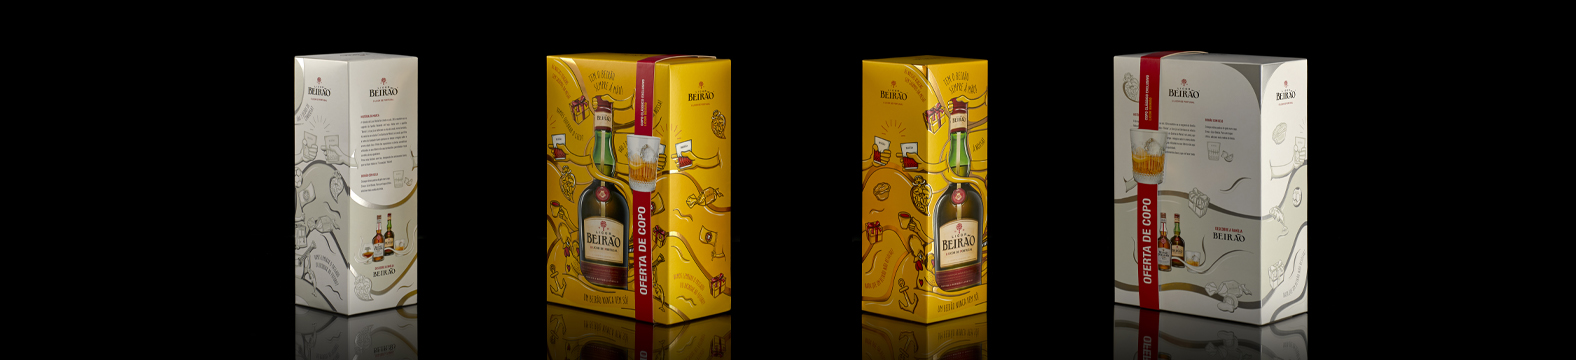 Omdesign cria packaging especial para o Natal do Licor Beirão